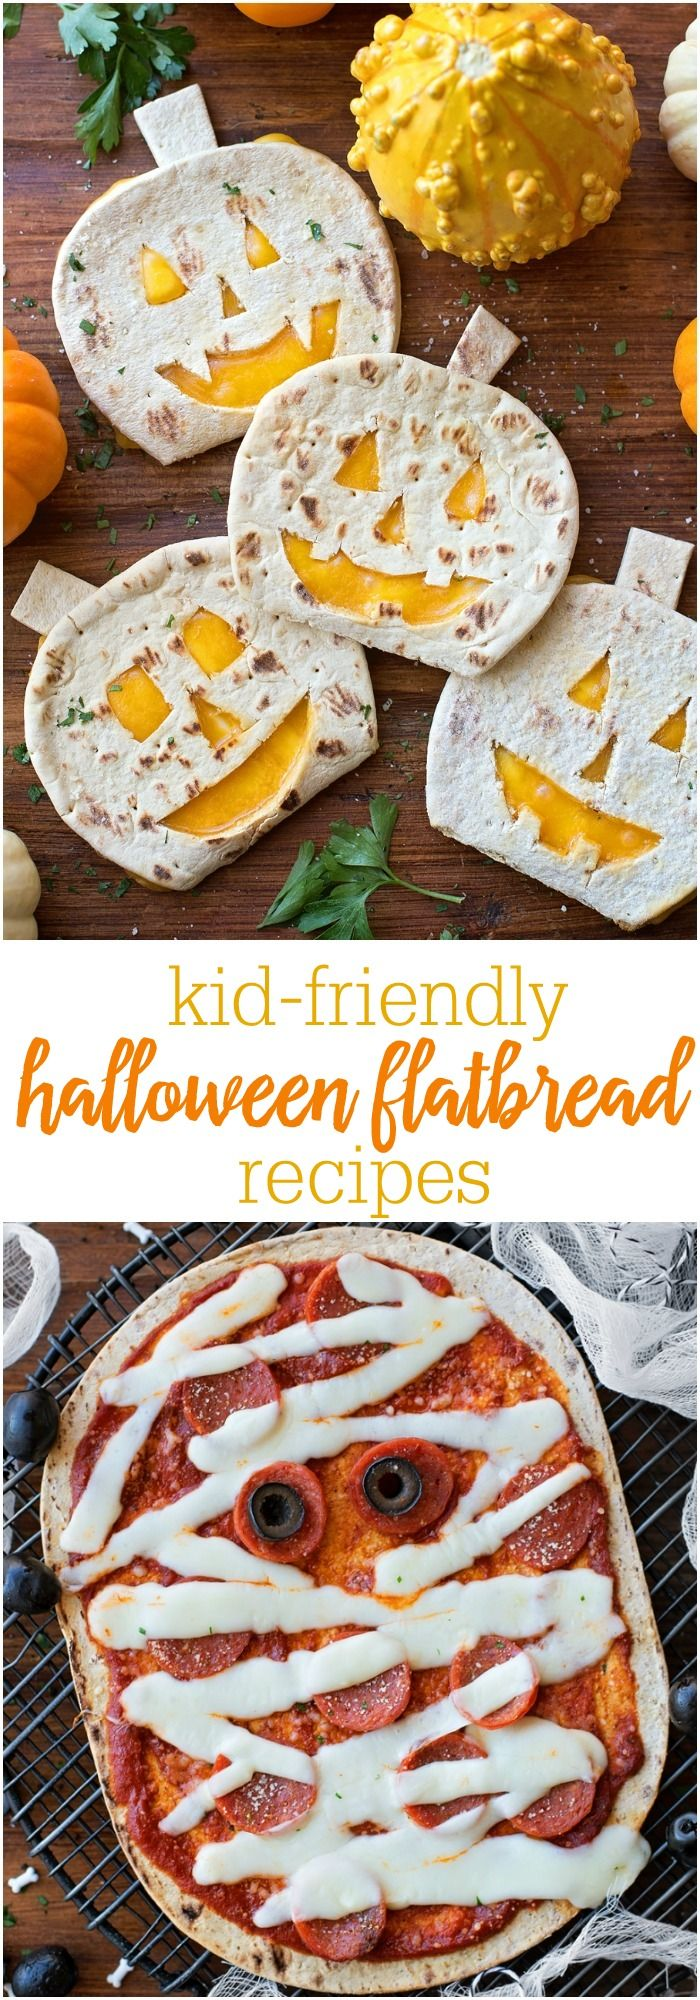 Kid-Friendly Halloween Flatbread recipes including Pumpkin Quesadillas and Mummy Pizzas - perfect for Halloween!